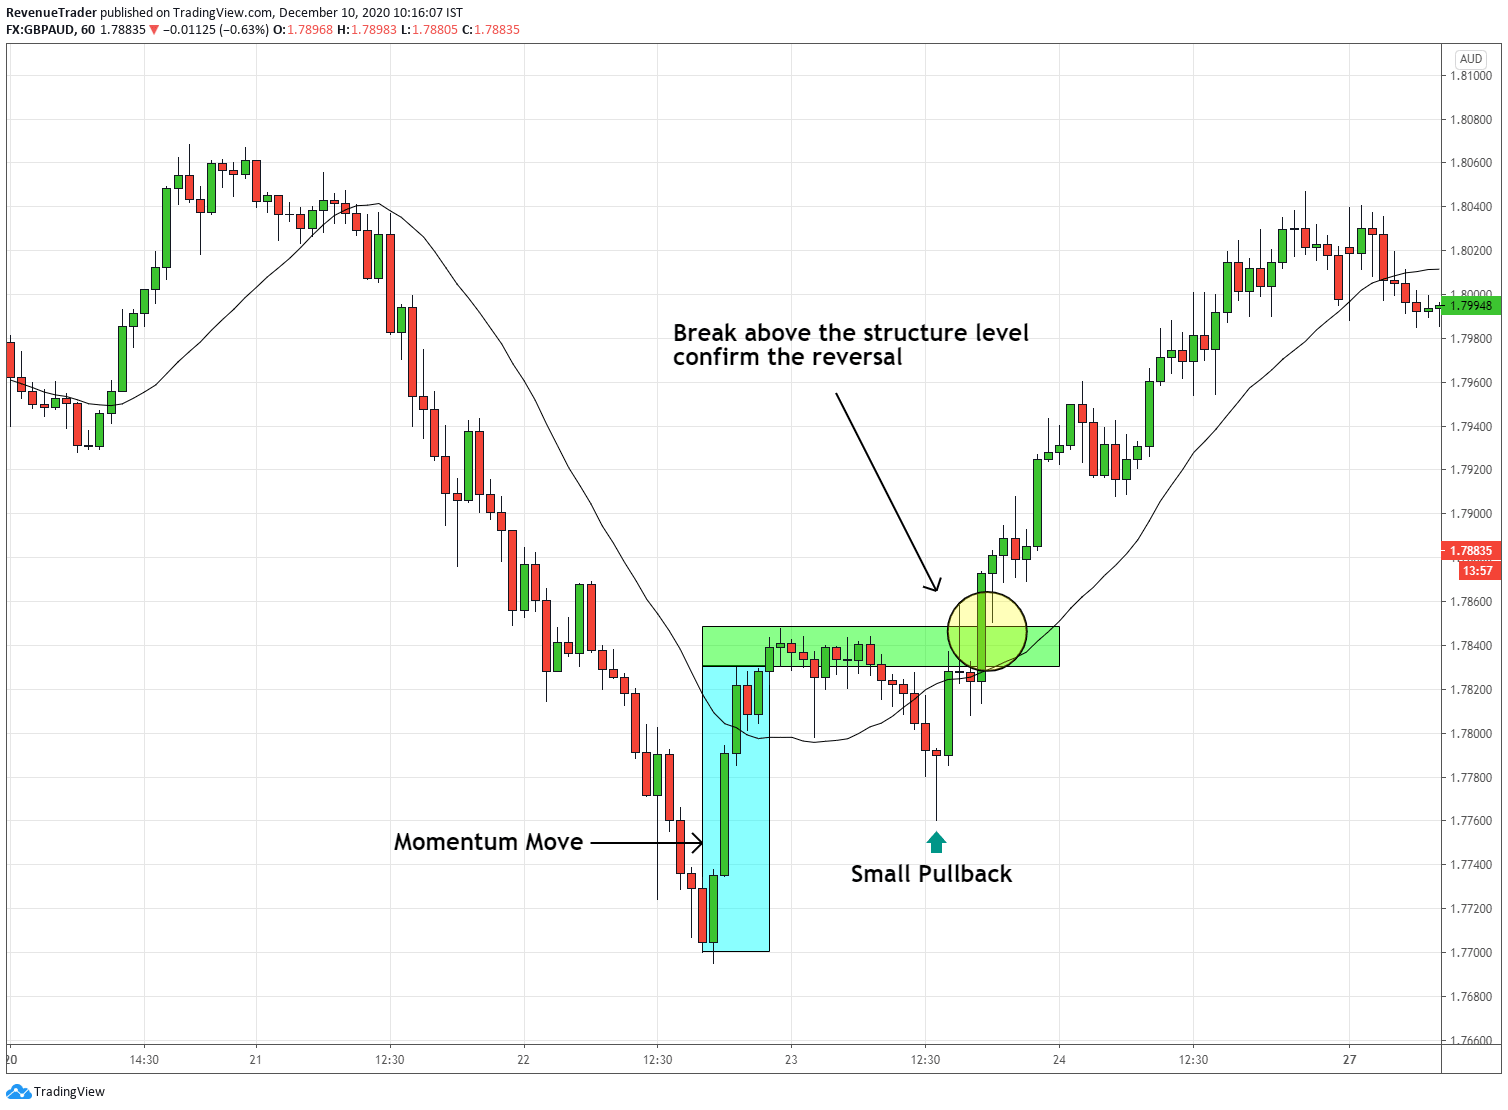 momentum drive pattern in a downtrend